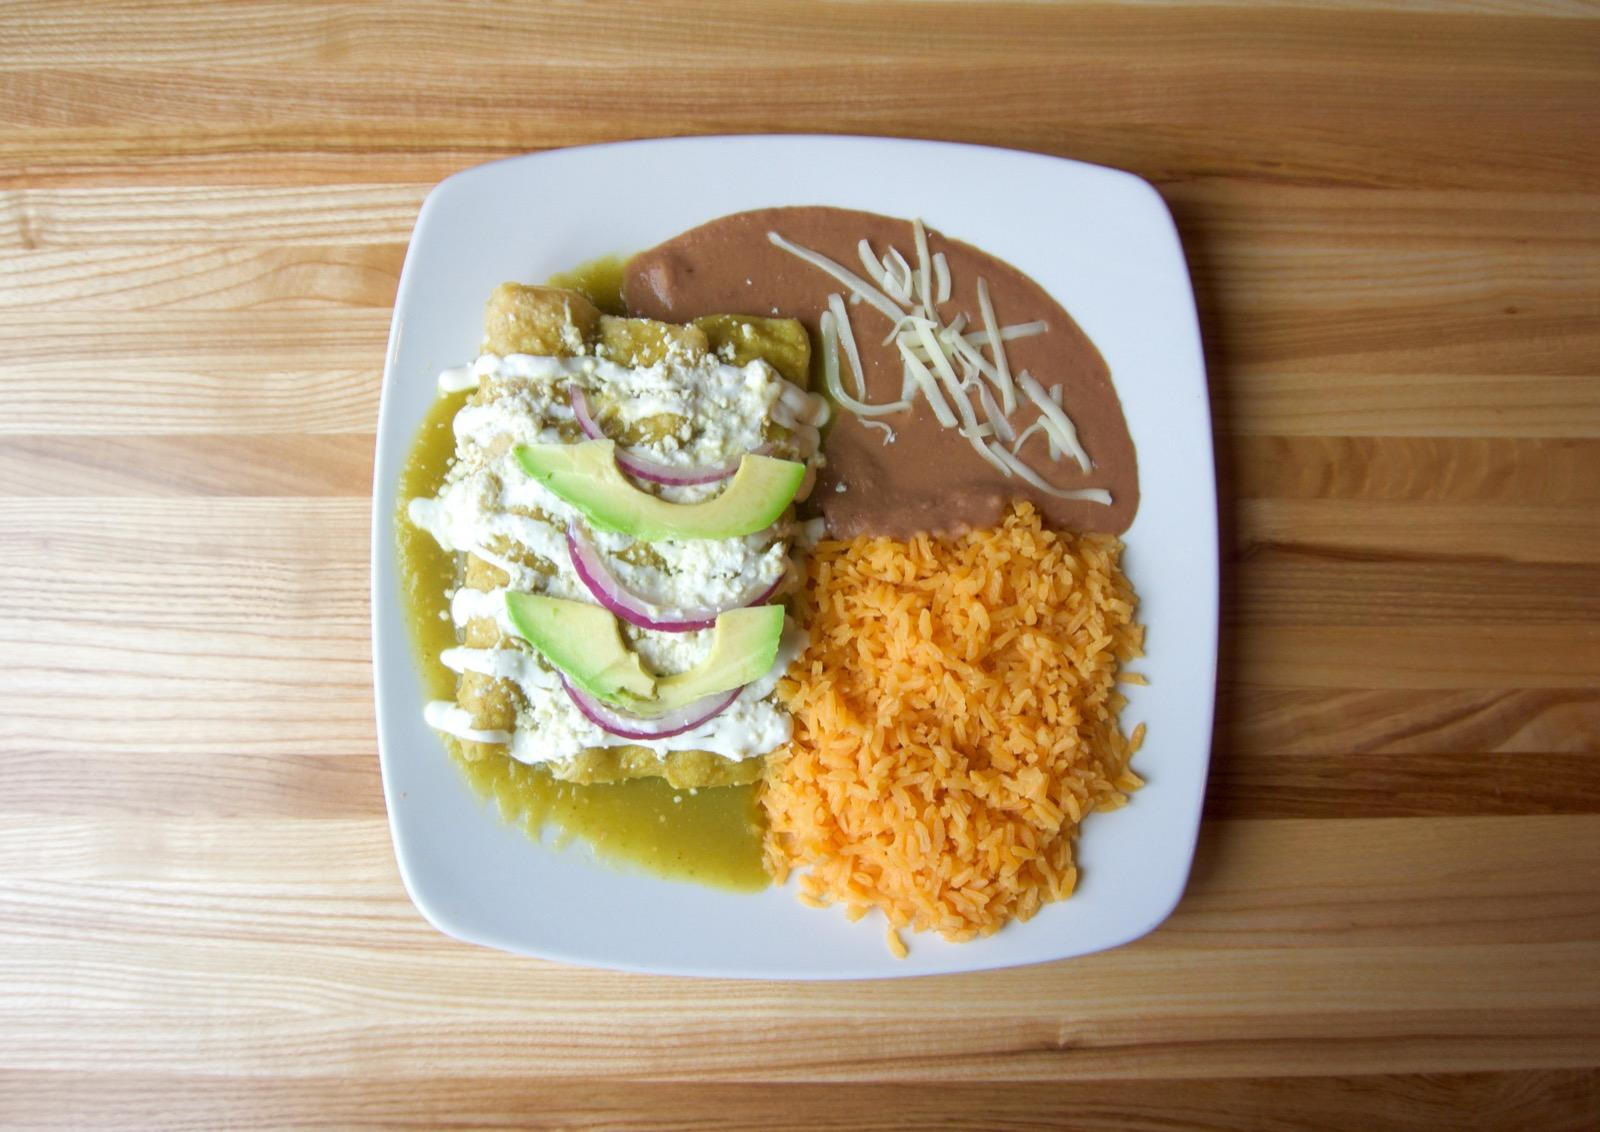 <p>Chicken enchiladas: three corn tortillas with chicken topped with green, red, or cheese sauce, sour cream, feta cheese, and red onion, served with rice and beans / Image: Brian Planalp // Published: 1.29.18</p>